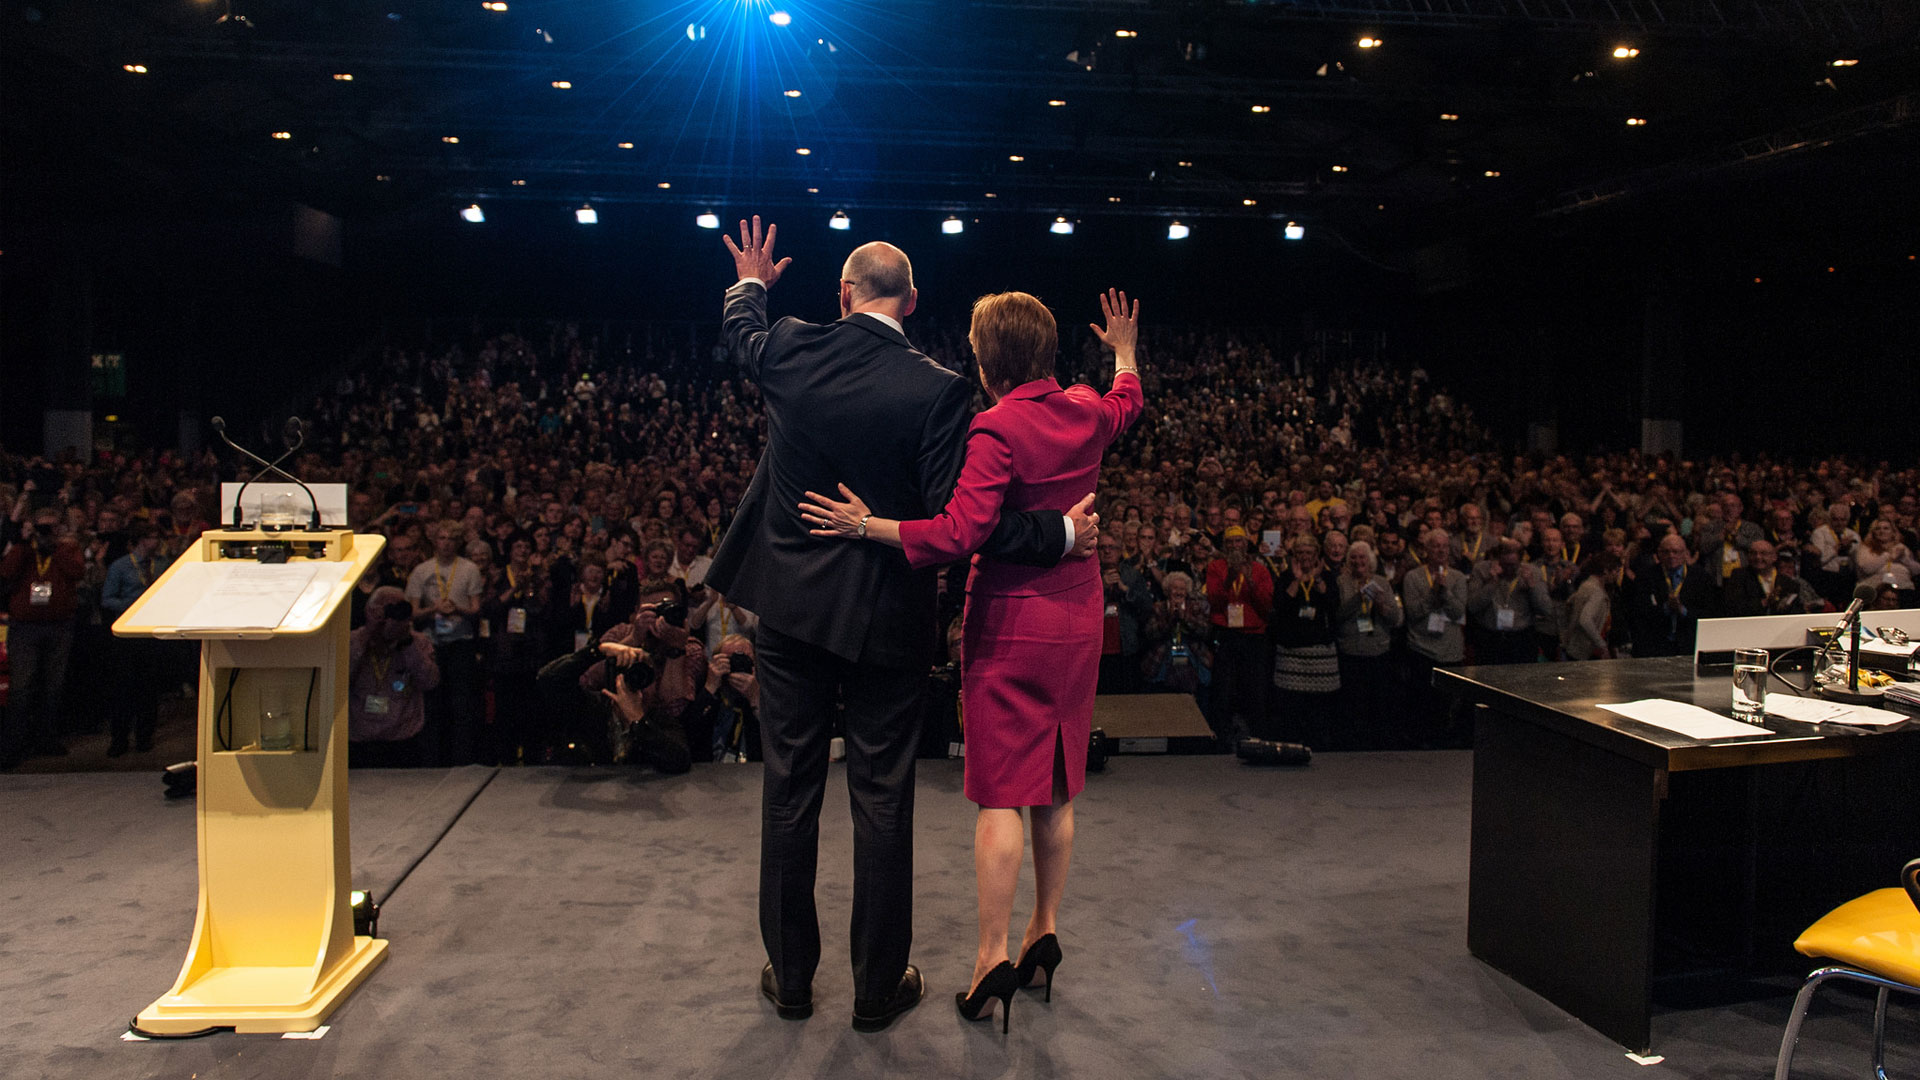 The First Minister of Scotland, Nicola Sturgeon, with Deputy First Minister, John Swinney, waving to the crowd at the 2015 SNP Conference.